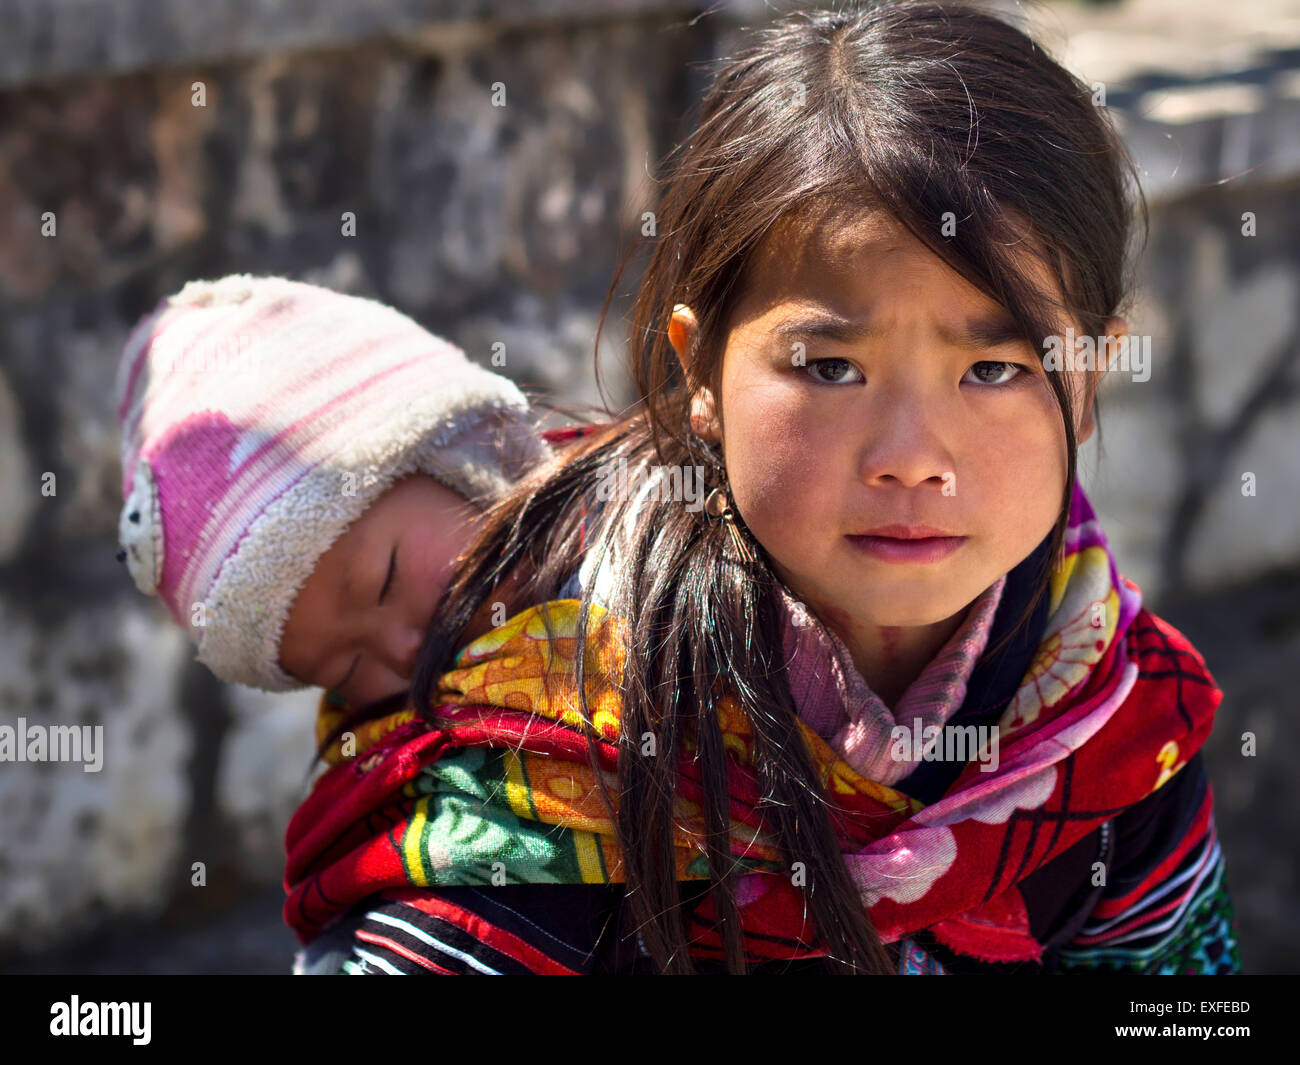 Unidentified Hmong girl carrying baby and wearing traditional attire in Sapa town, Lao Cai, Vietnam. - Stock Image